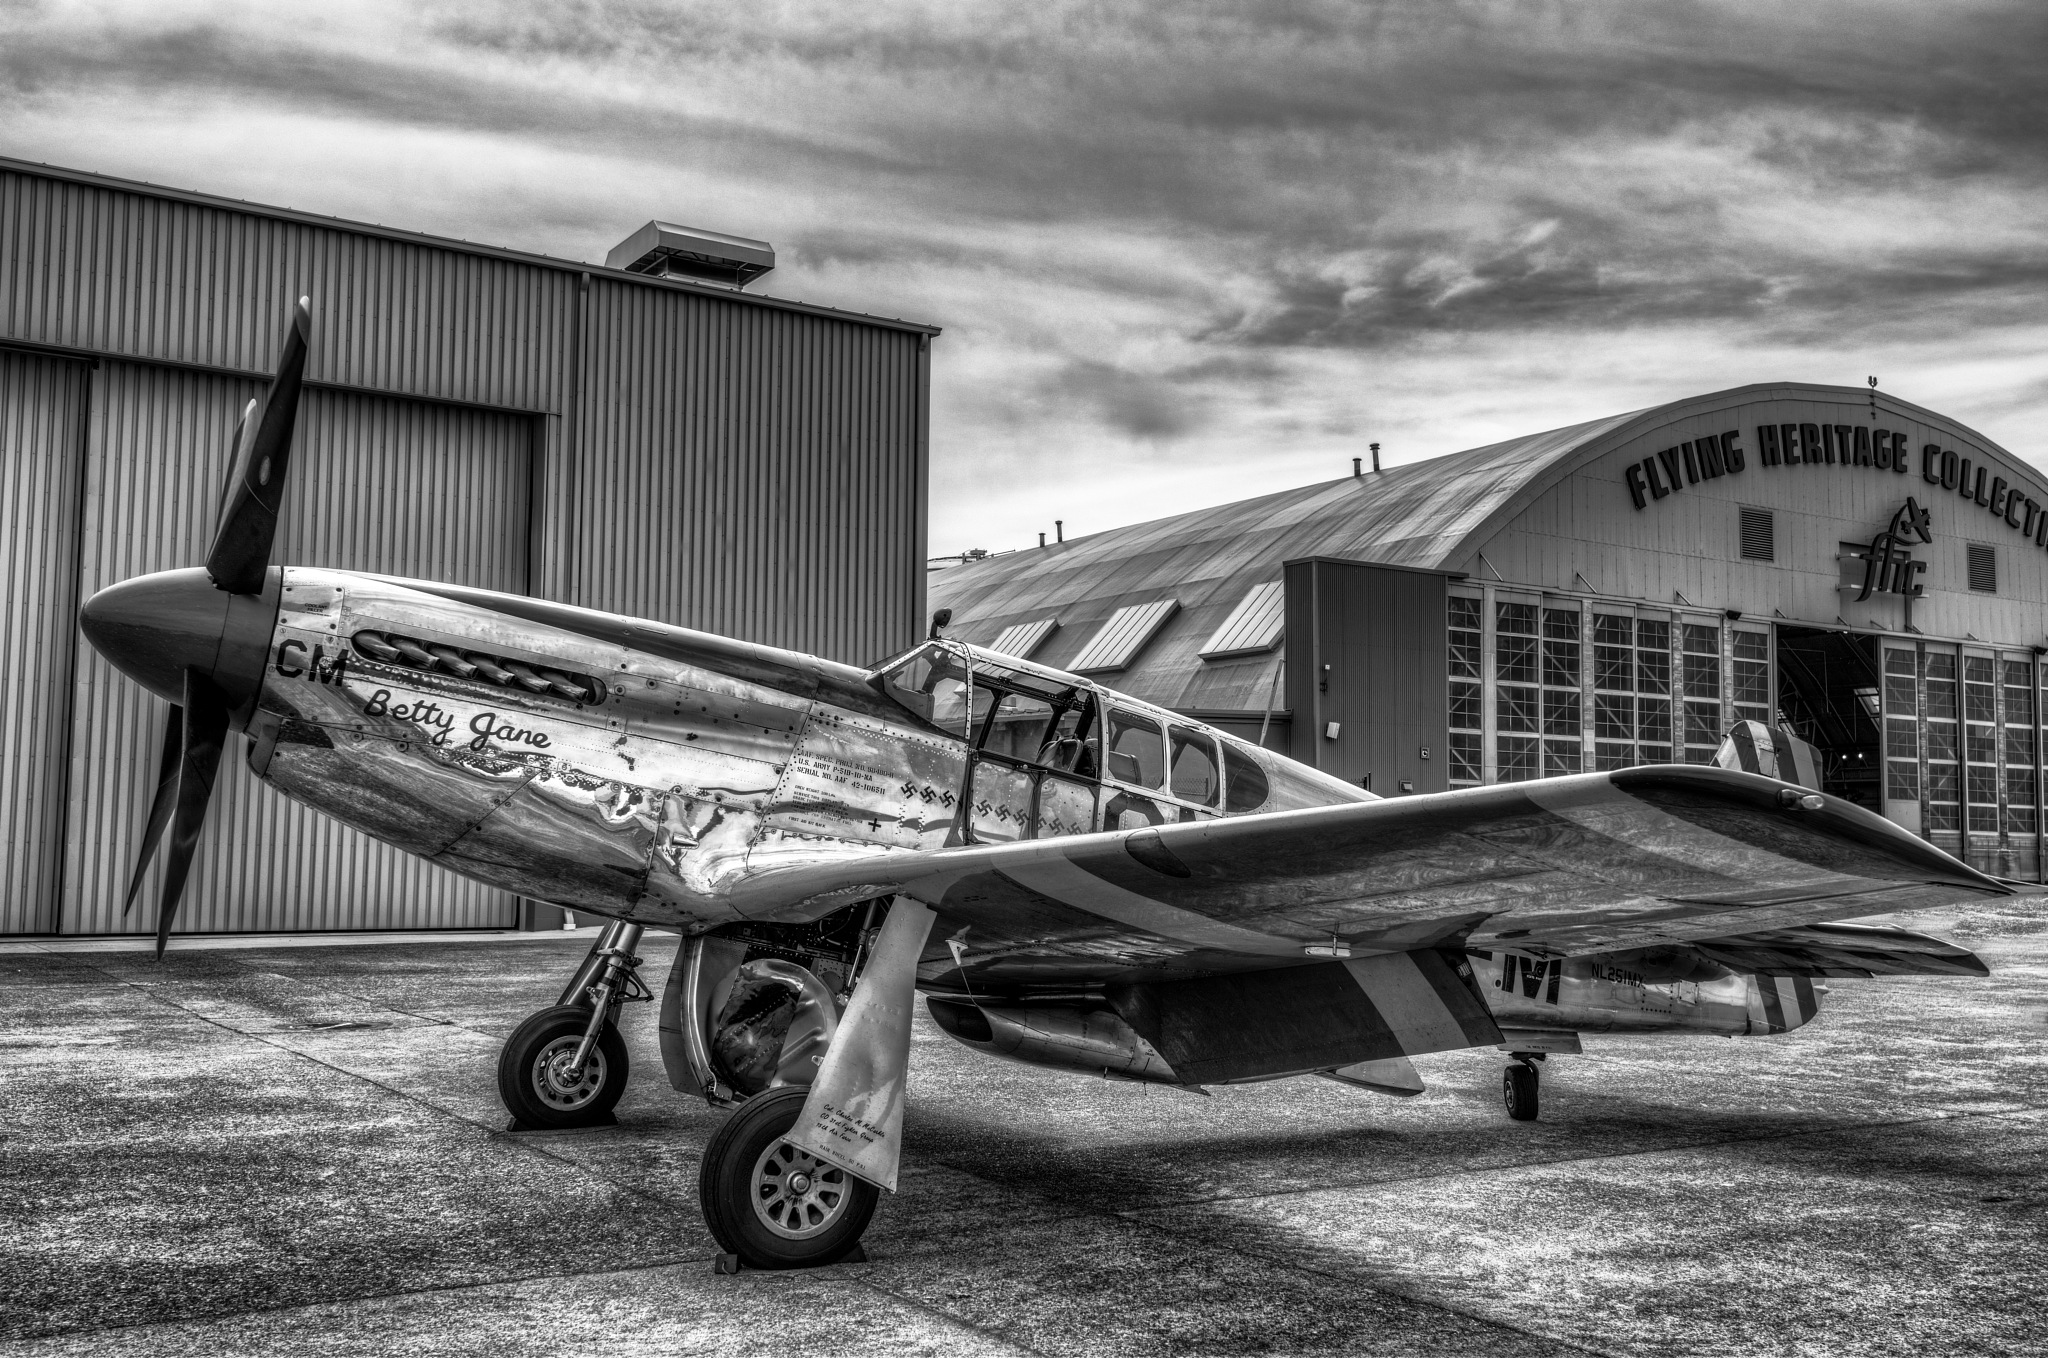 P-51 Mustang by Lightboxphoto